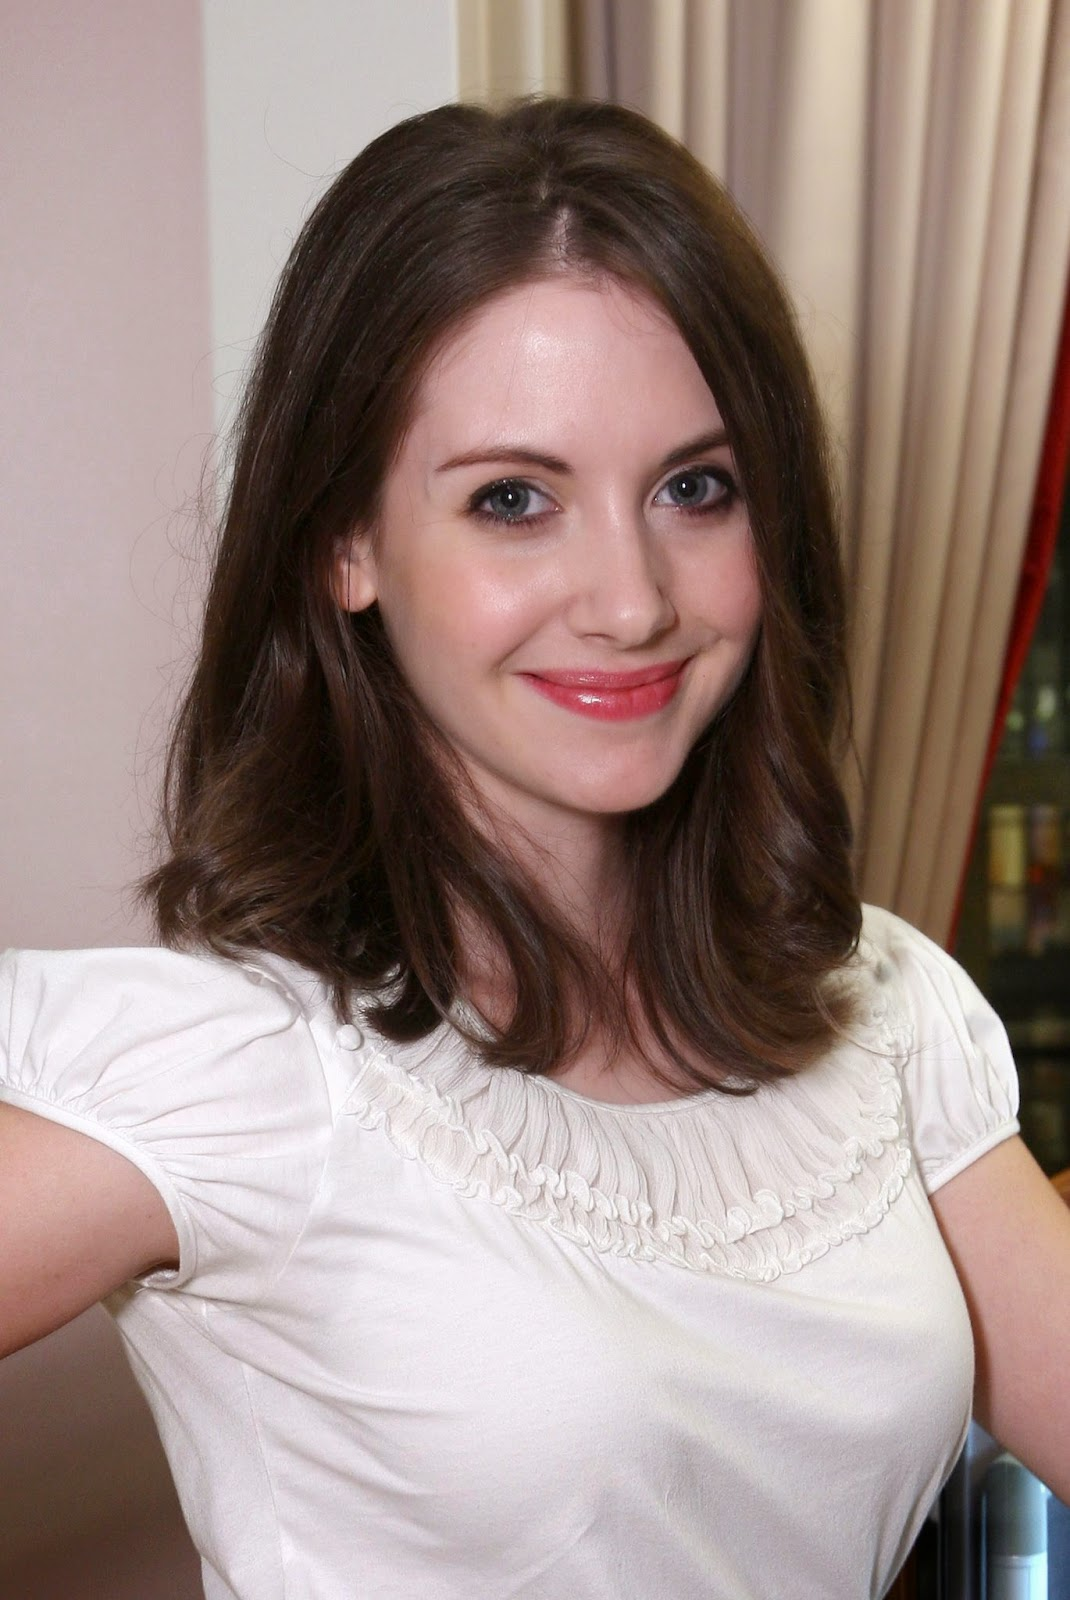 Hollywood Actress Wallpaper: Alison Brie HD Wallpapers